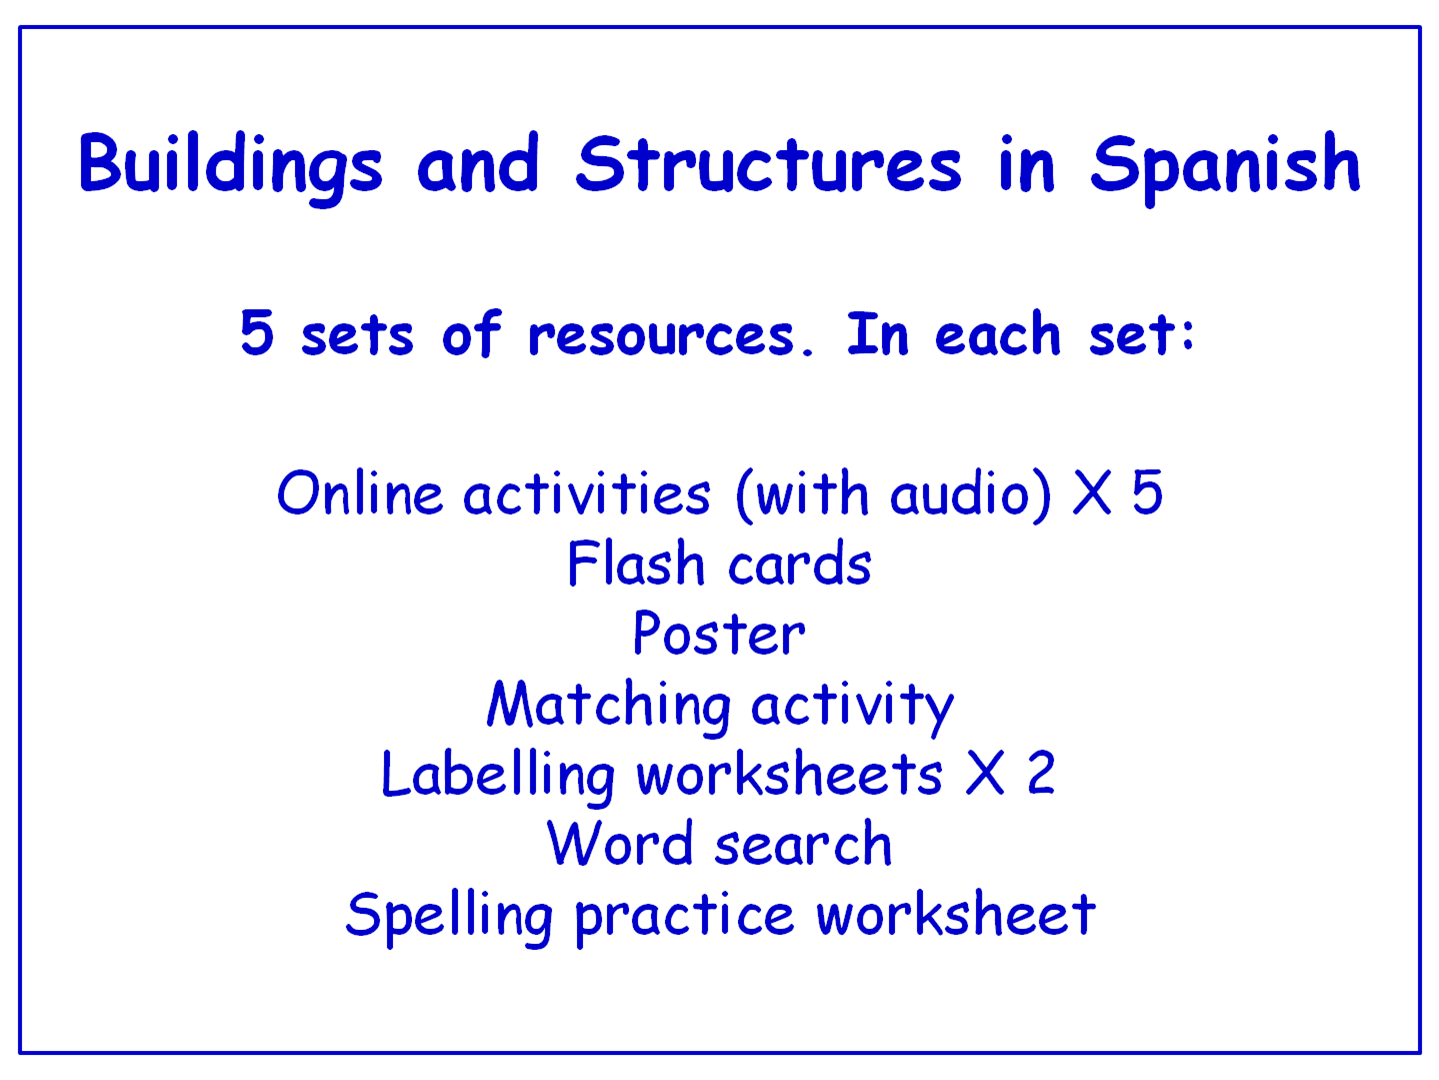 Buildings and Structures in Spanish  Worksheets, Games, Activities and Flash Cards (with audio) Bundle (5 sets)